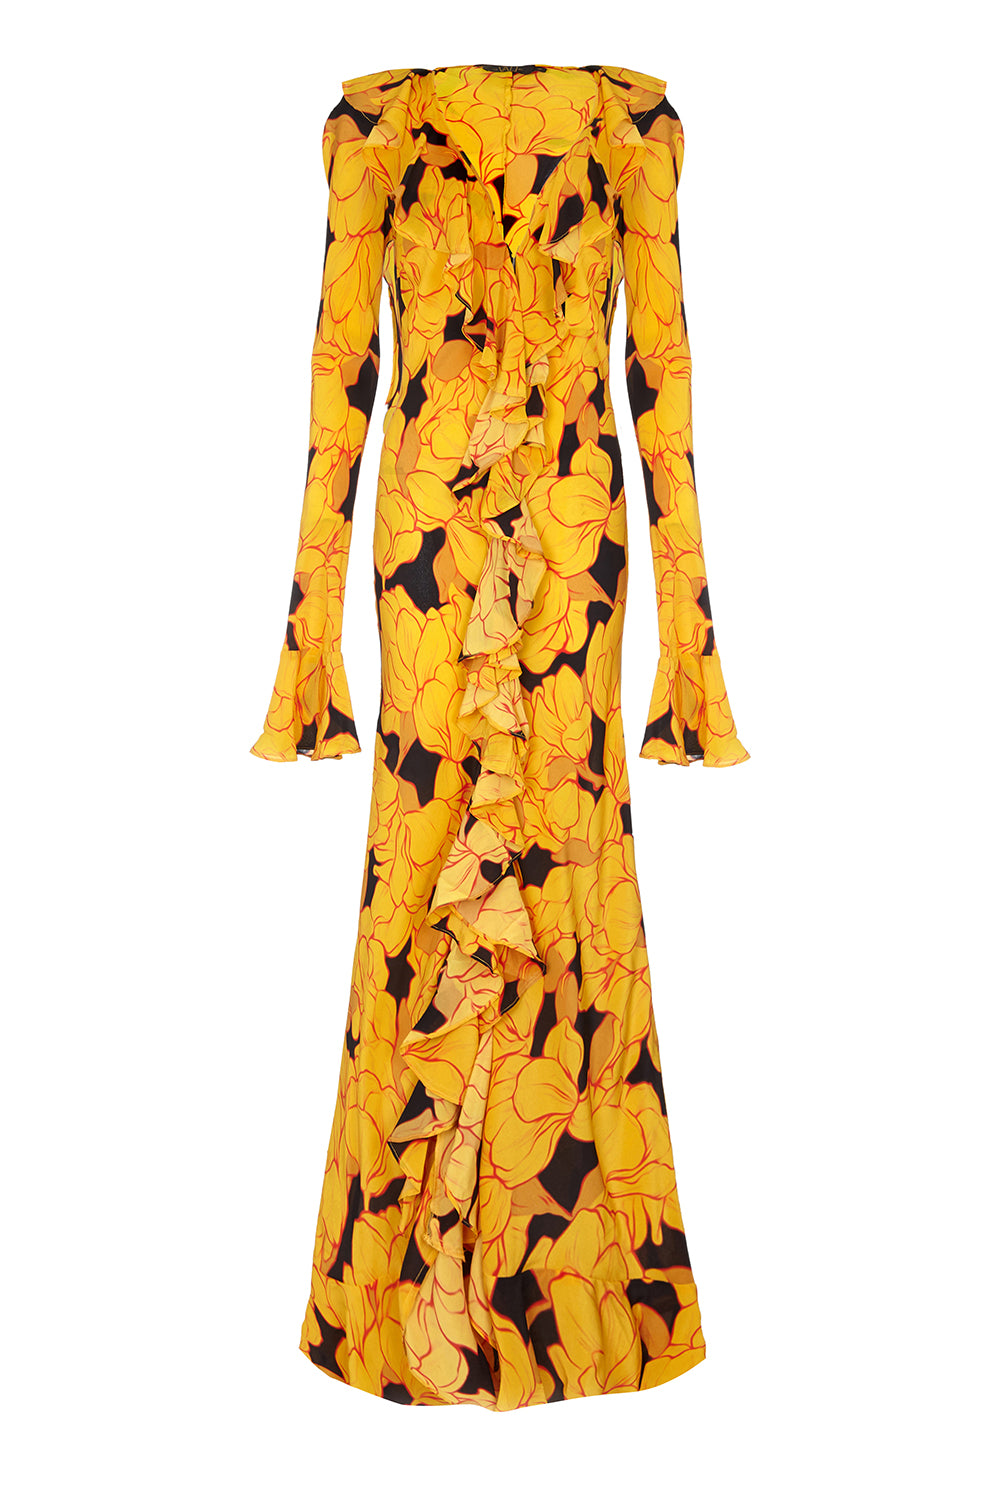 Tangerine Yellow Magnolia Dress